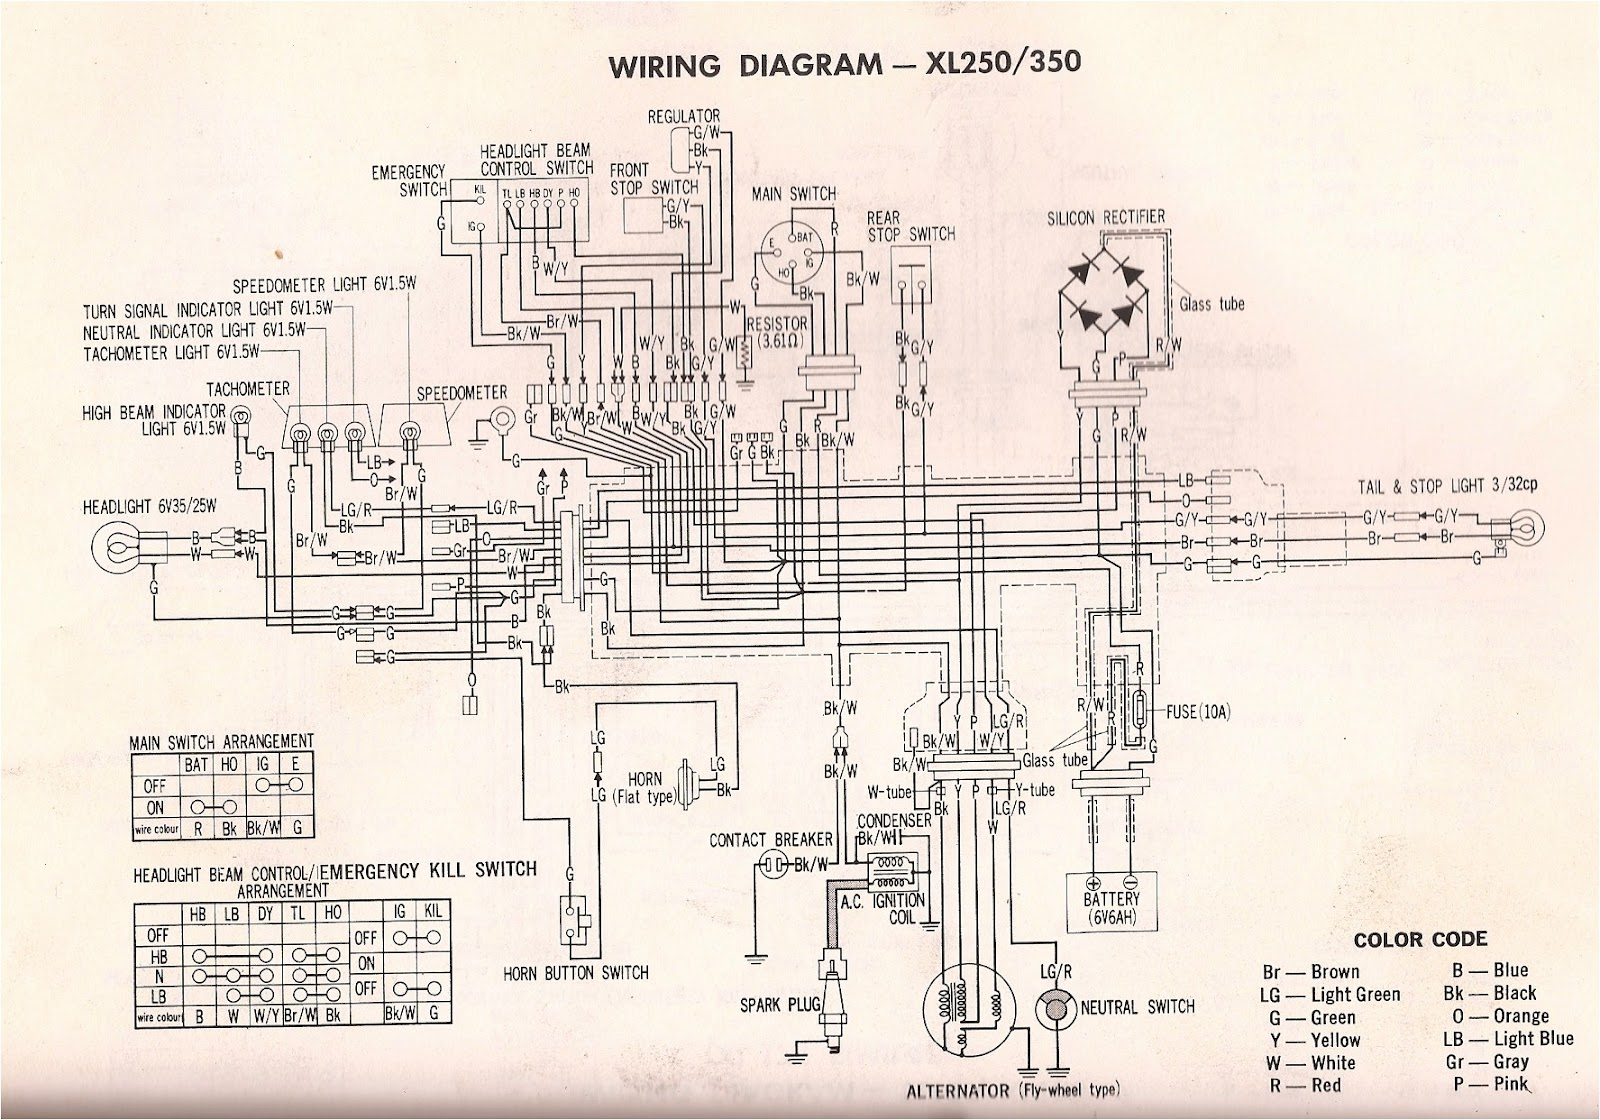 Honda Tl125 Wiring Diagram Trusted Cb750k Wire On Motorcycle Harness 1976 1974 Tl 125 Free Download Diagrams Tl250 Xl